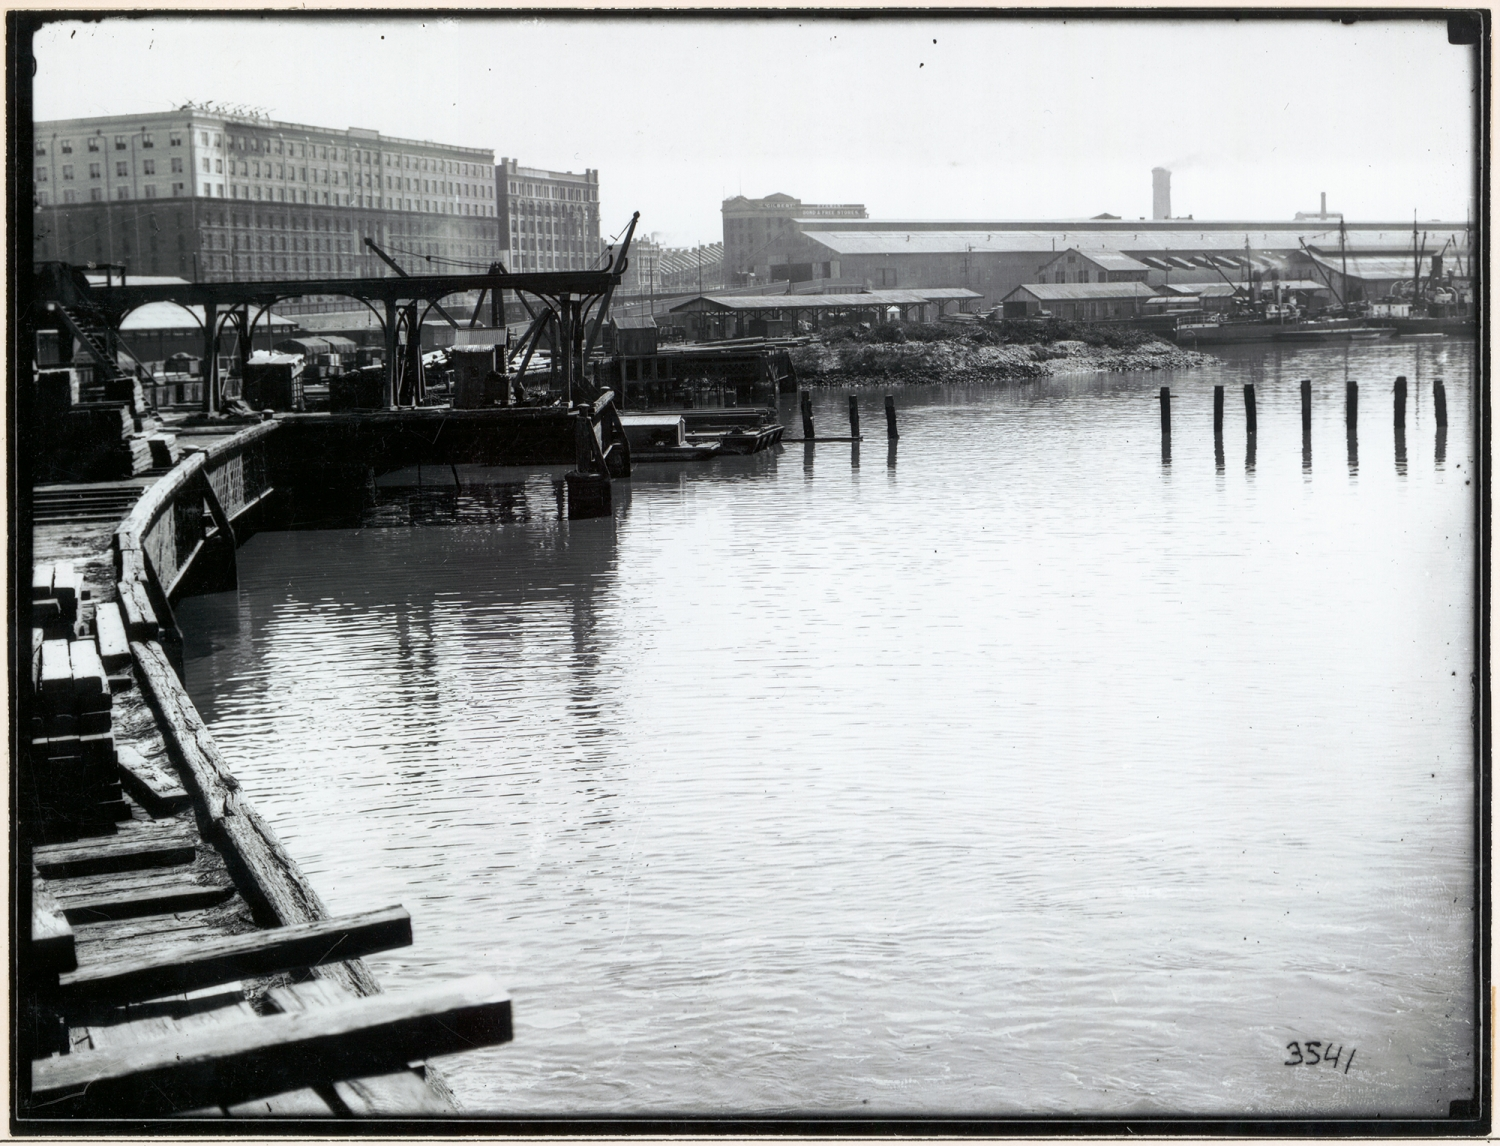 Black and white photograph with water in foreground.